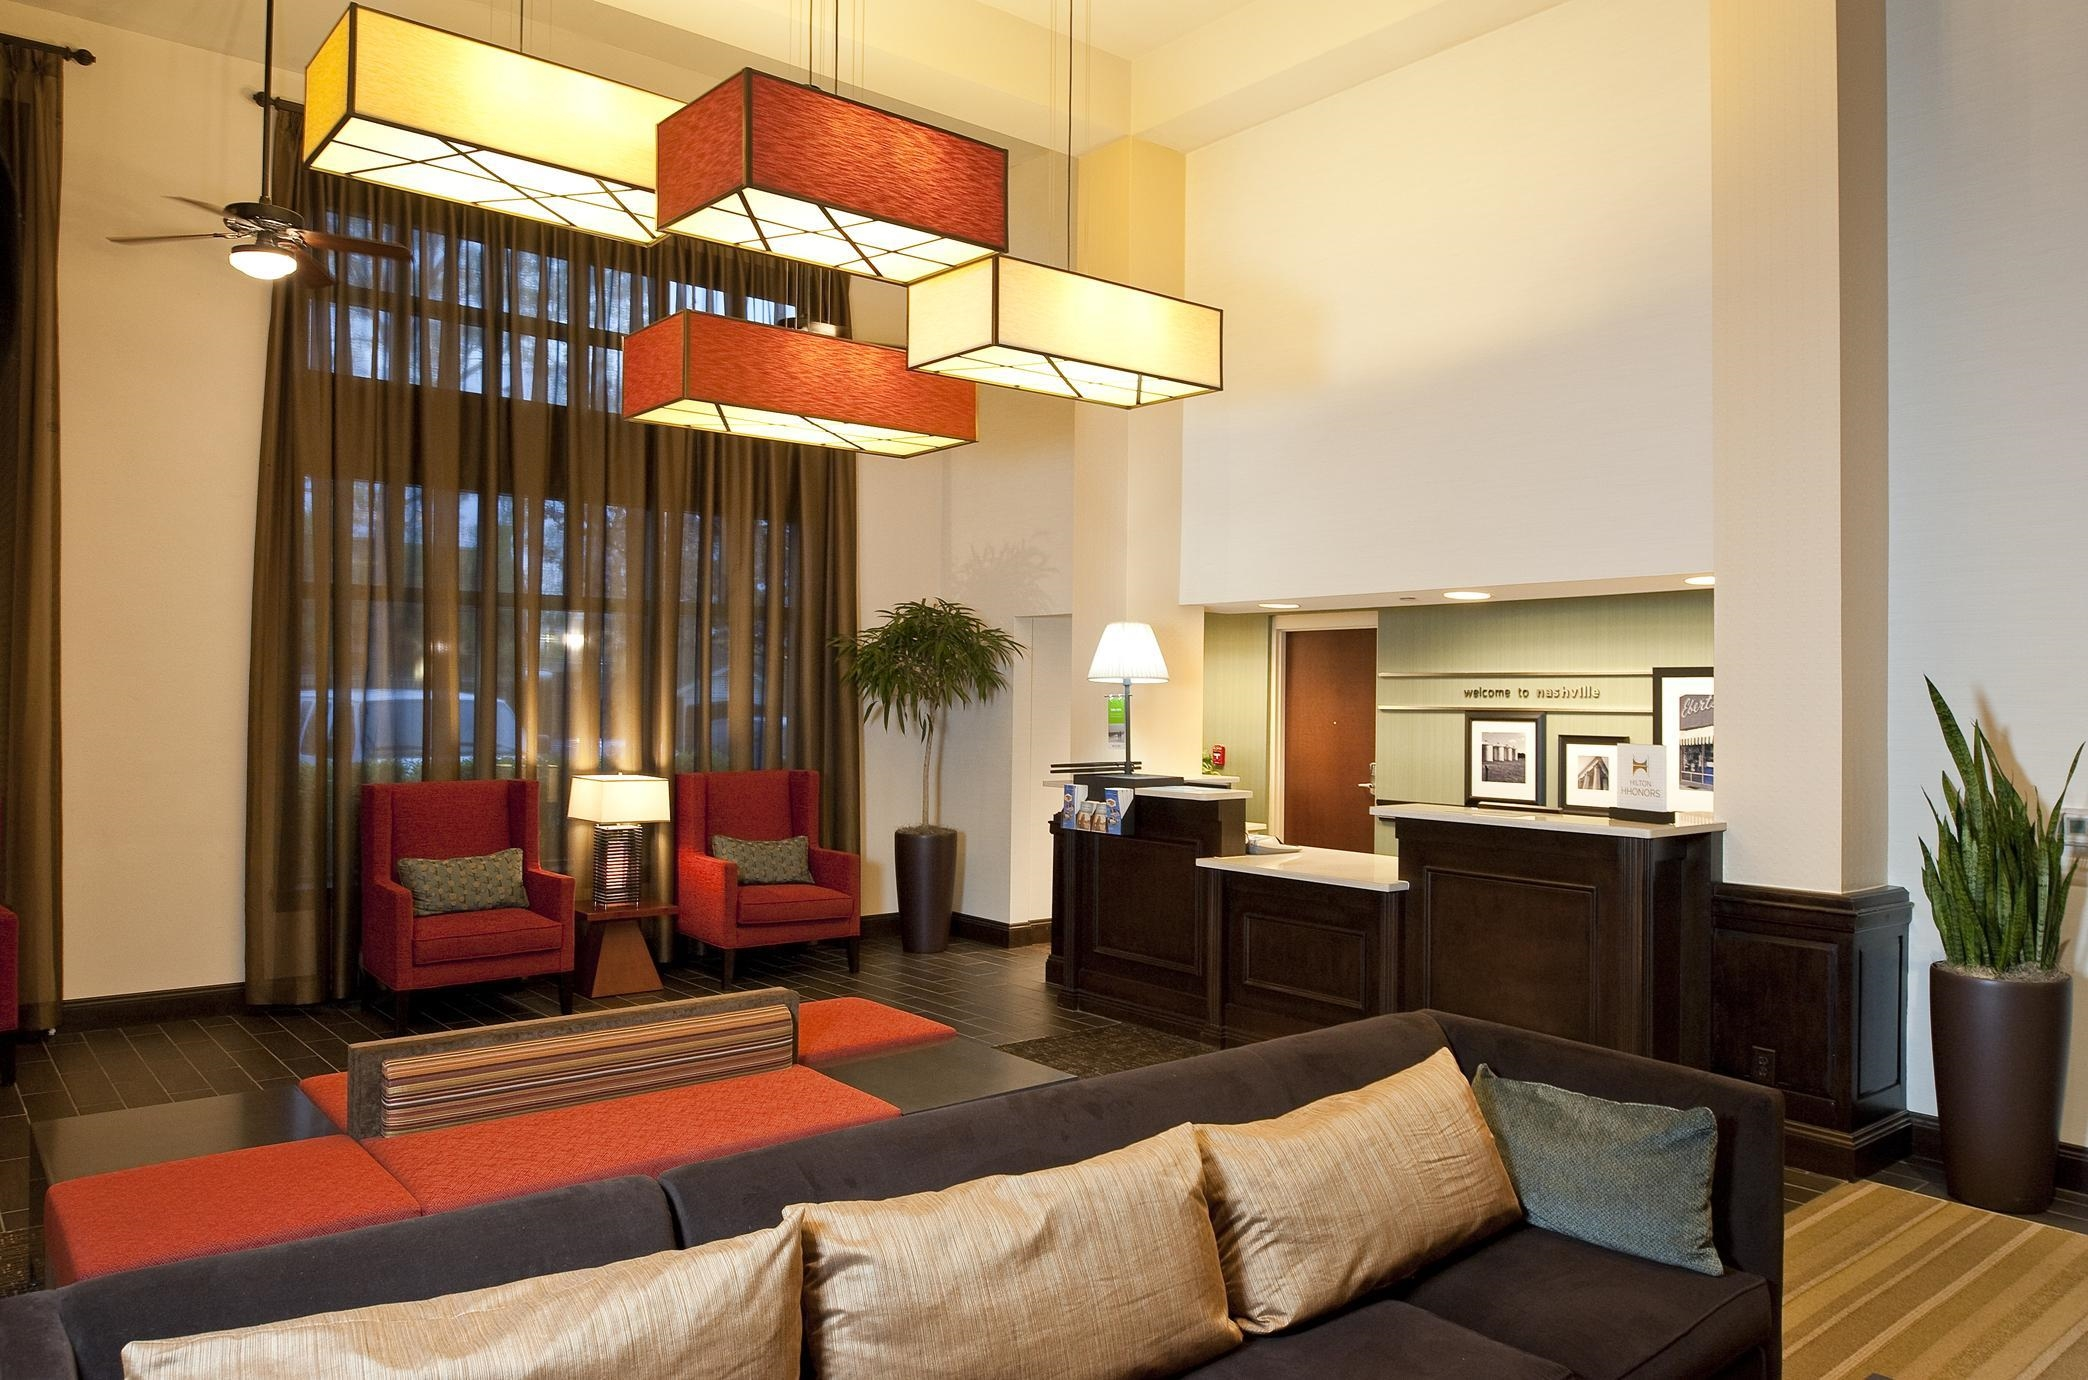 Hotels business in Nashville, TN, United States